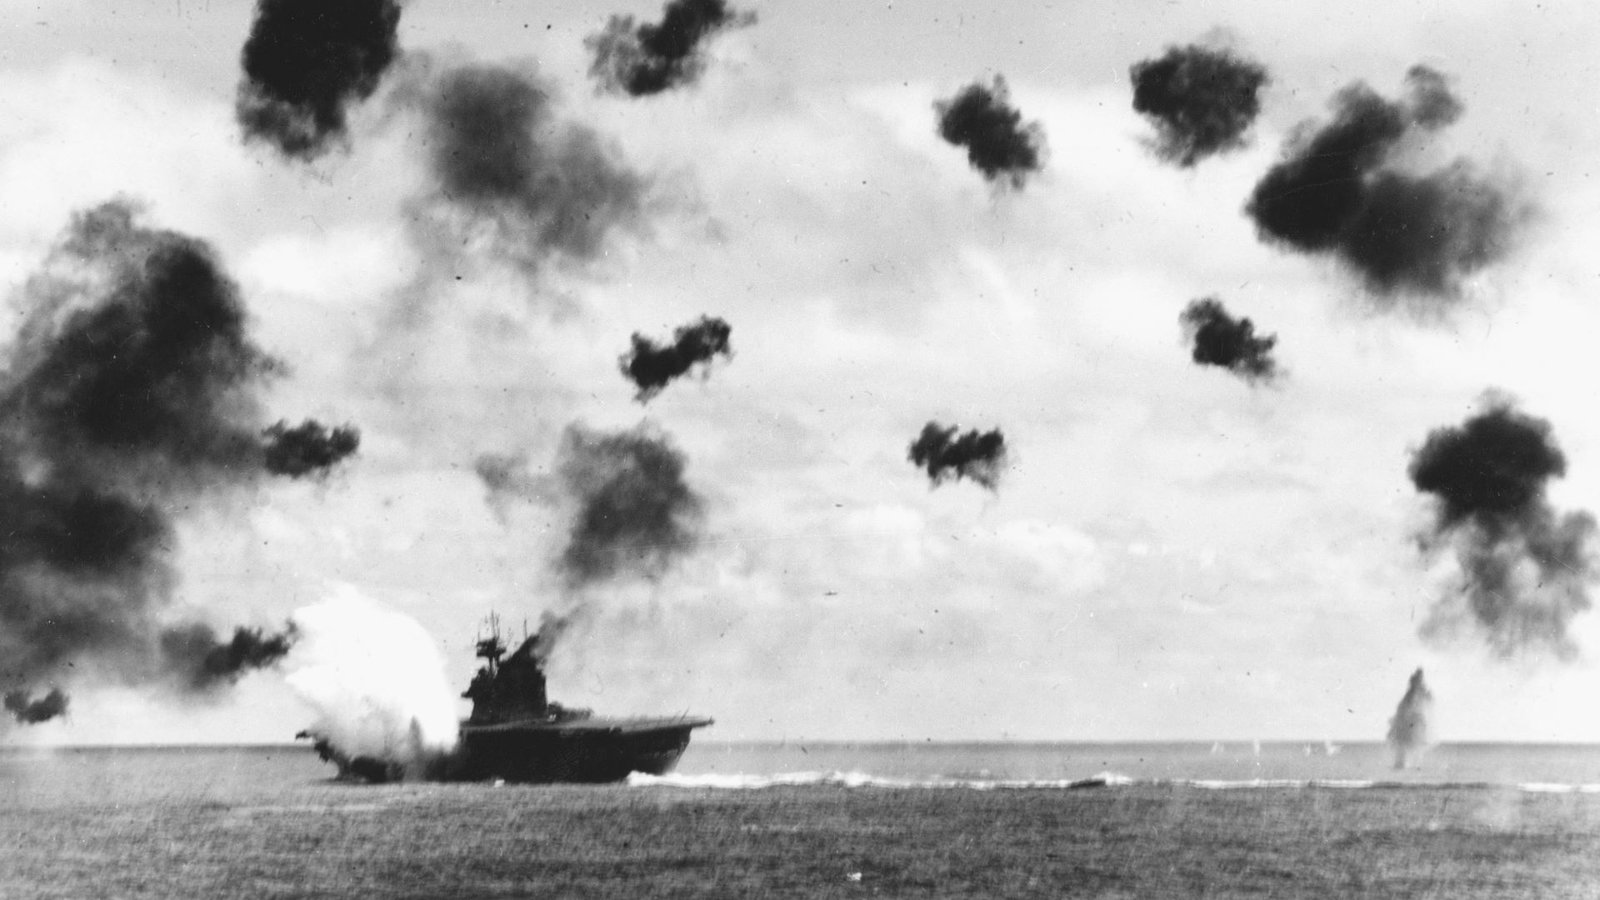 Midway: 10 Minutes That Changed the War